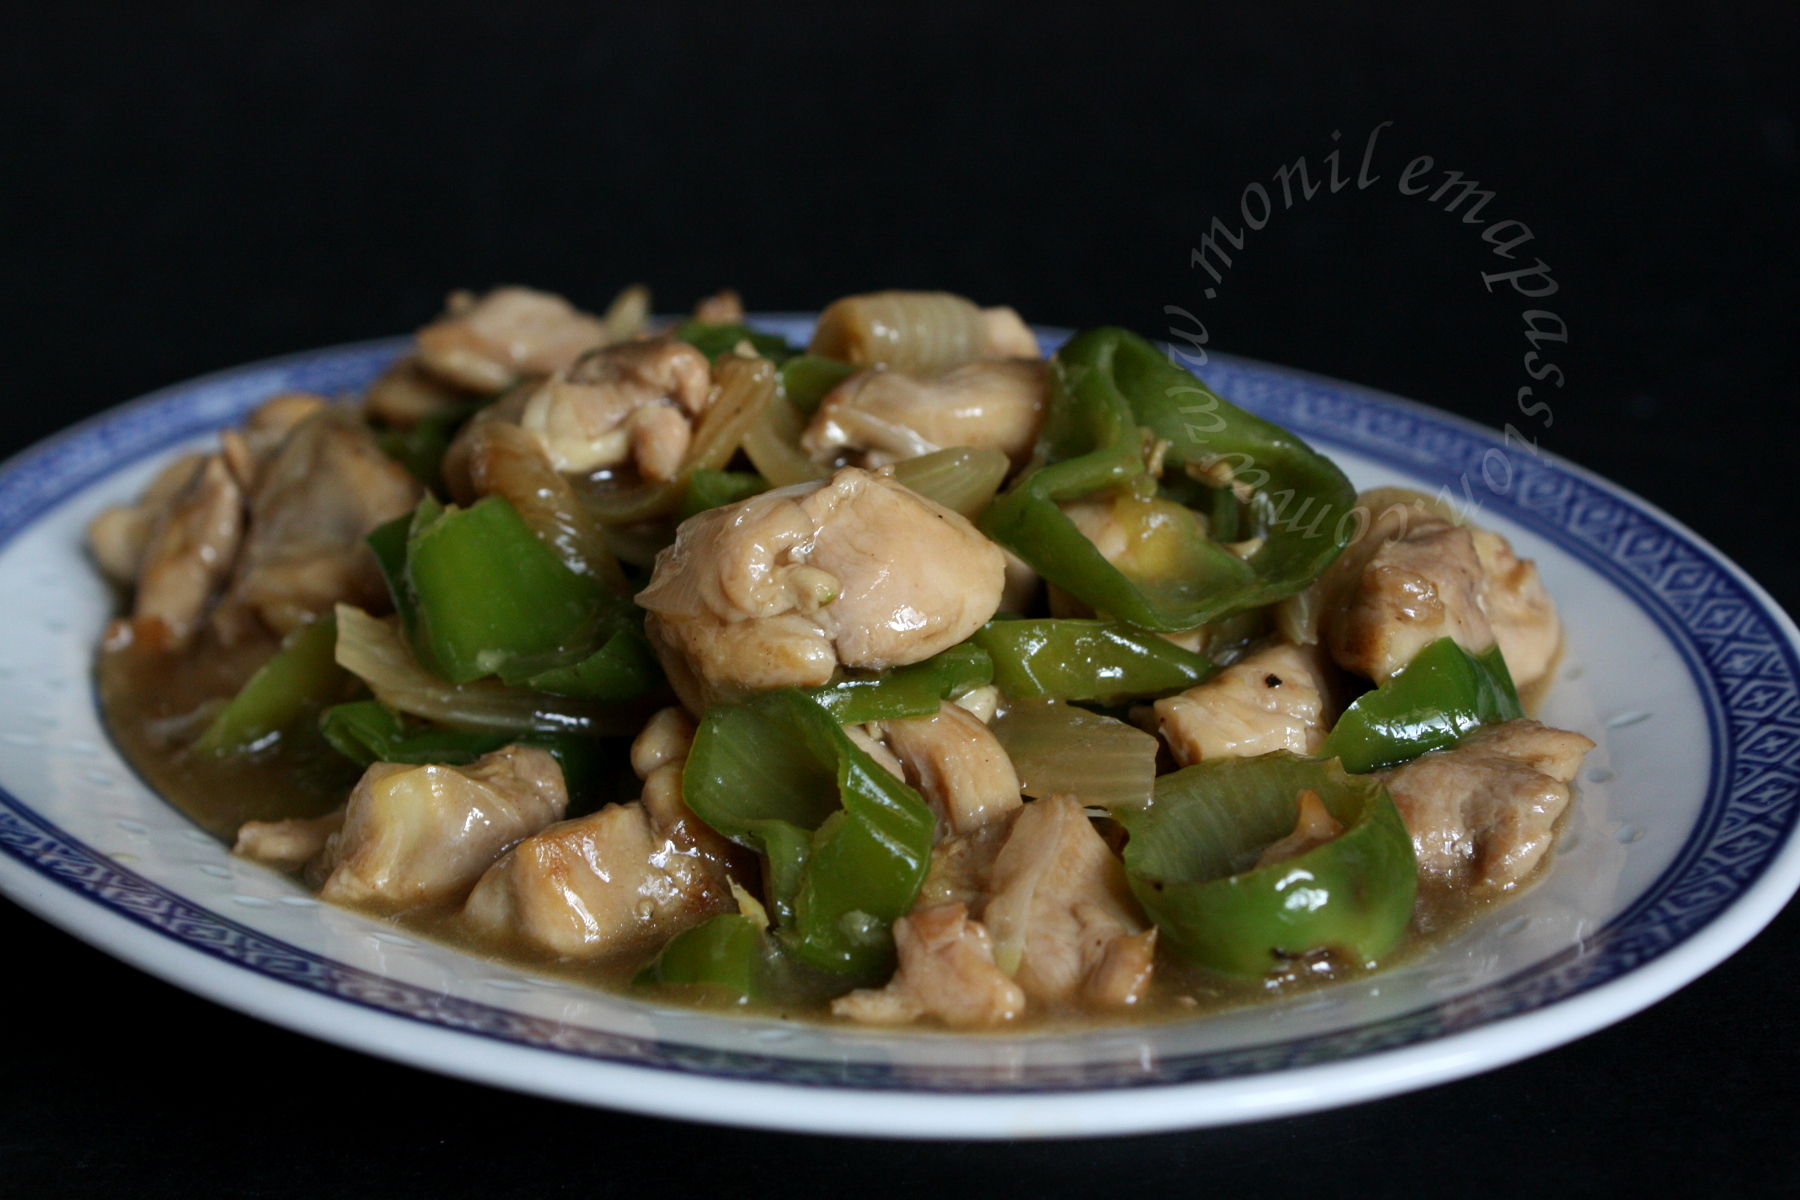 Poulet gros piments – Green sweet chili peppers and chicken stir fry